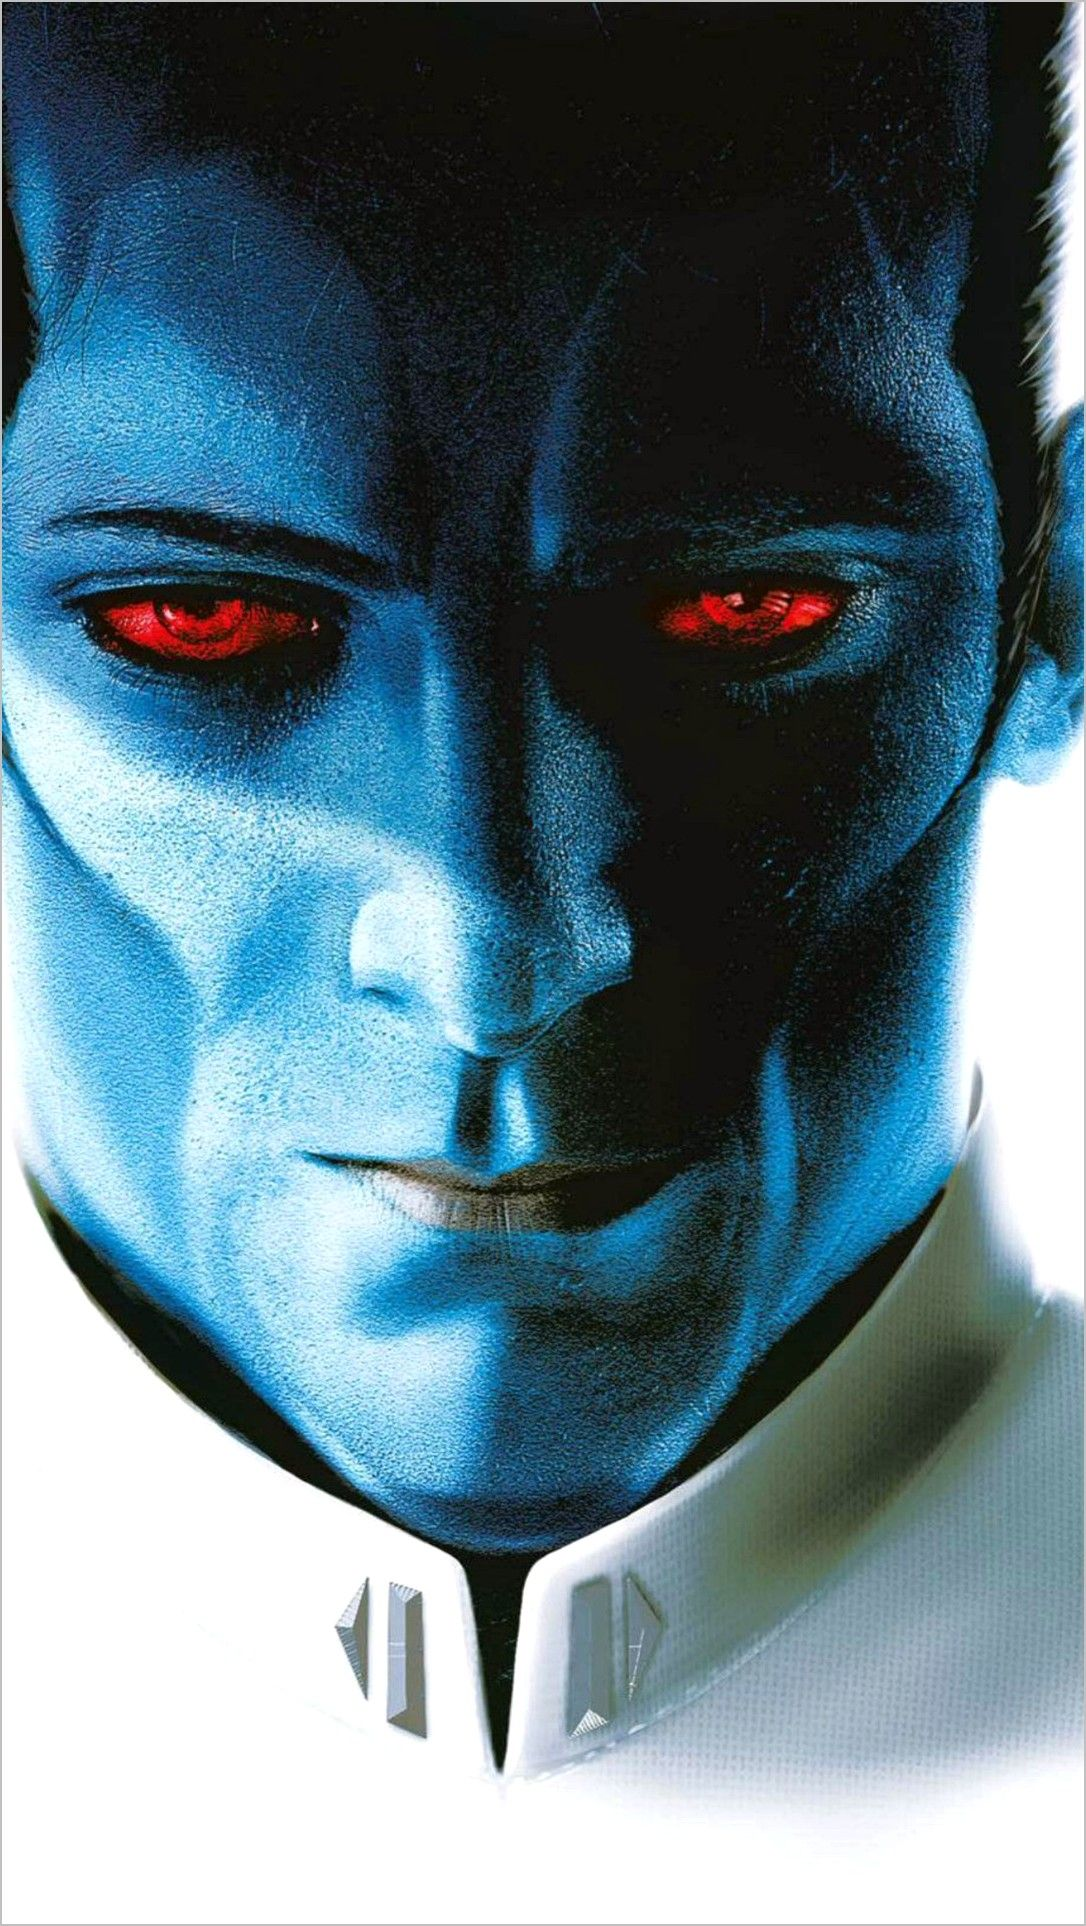 Star Wars Admiral Thrawn 4k Wallpaper In 2020 Star Wars Rebels Star Wars Wallpaper